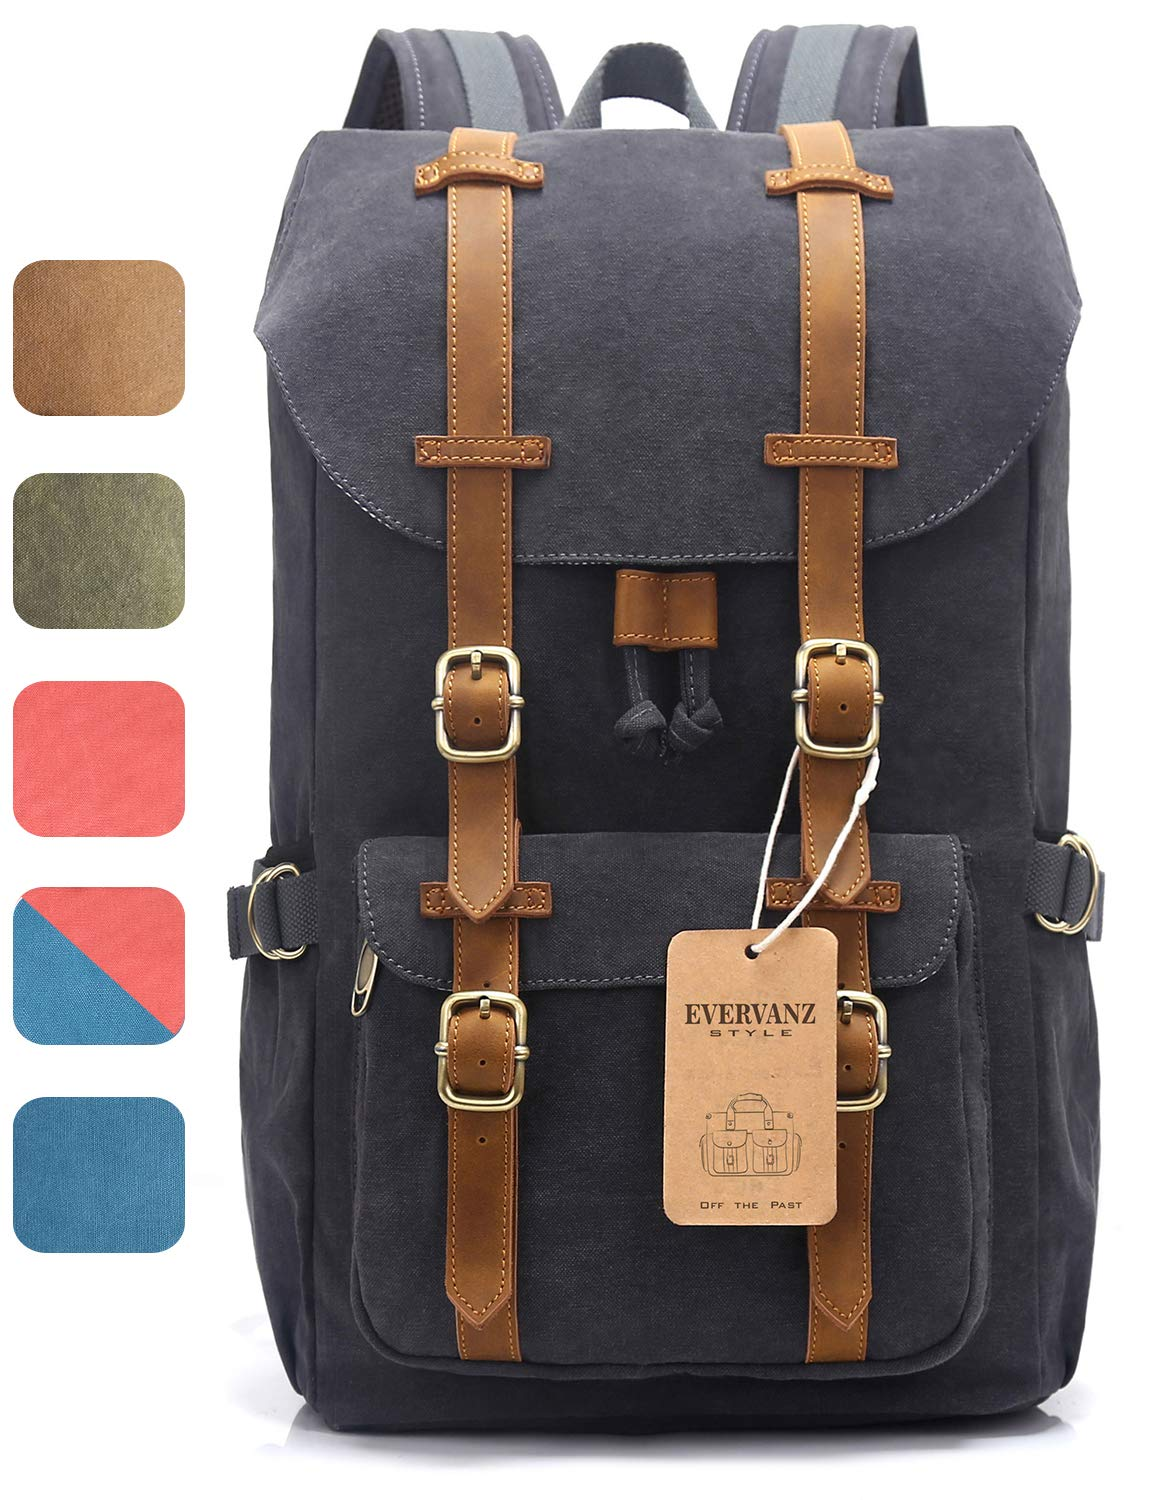 EverVanz Outdoor Canvas Backpack, Travel Hiking Camping Rucksack Pack, Large  Casual Daypack, College School Backpack, Shoulder Bags Fits 15